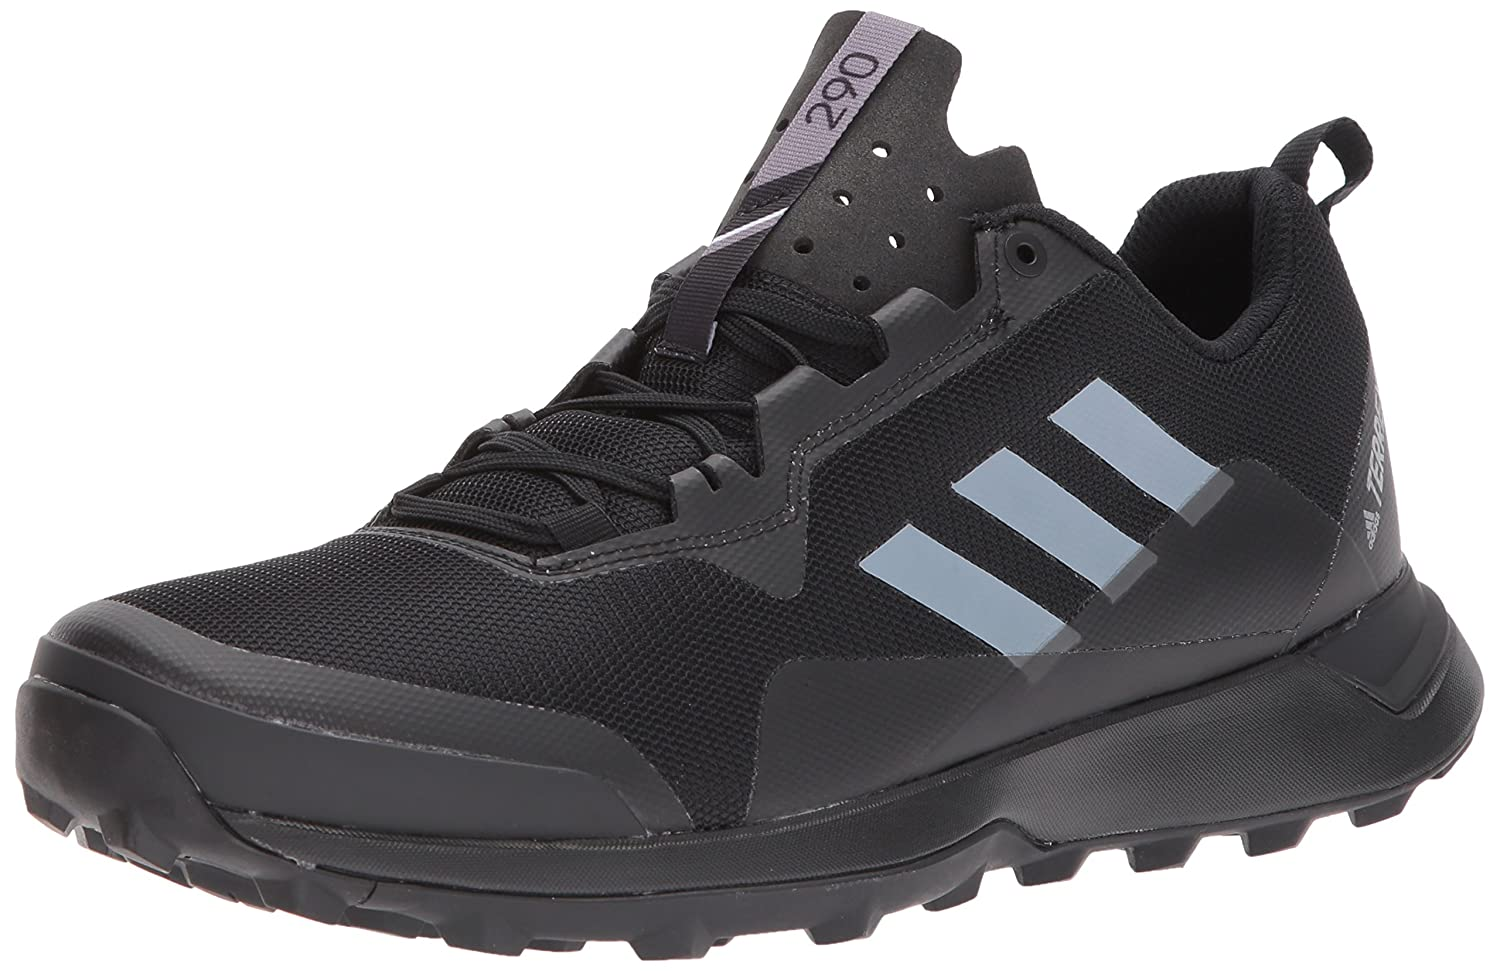 Adidas outdoor Men's Terrex CMTK Walking Schuhe, schwarz Weiß Grau Three, 8 D US